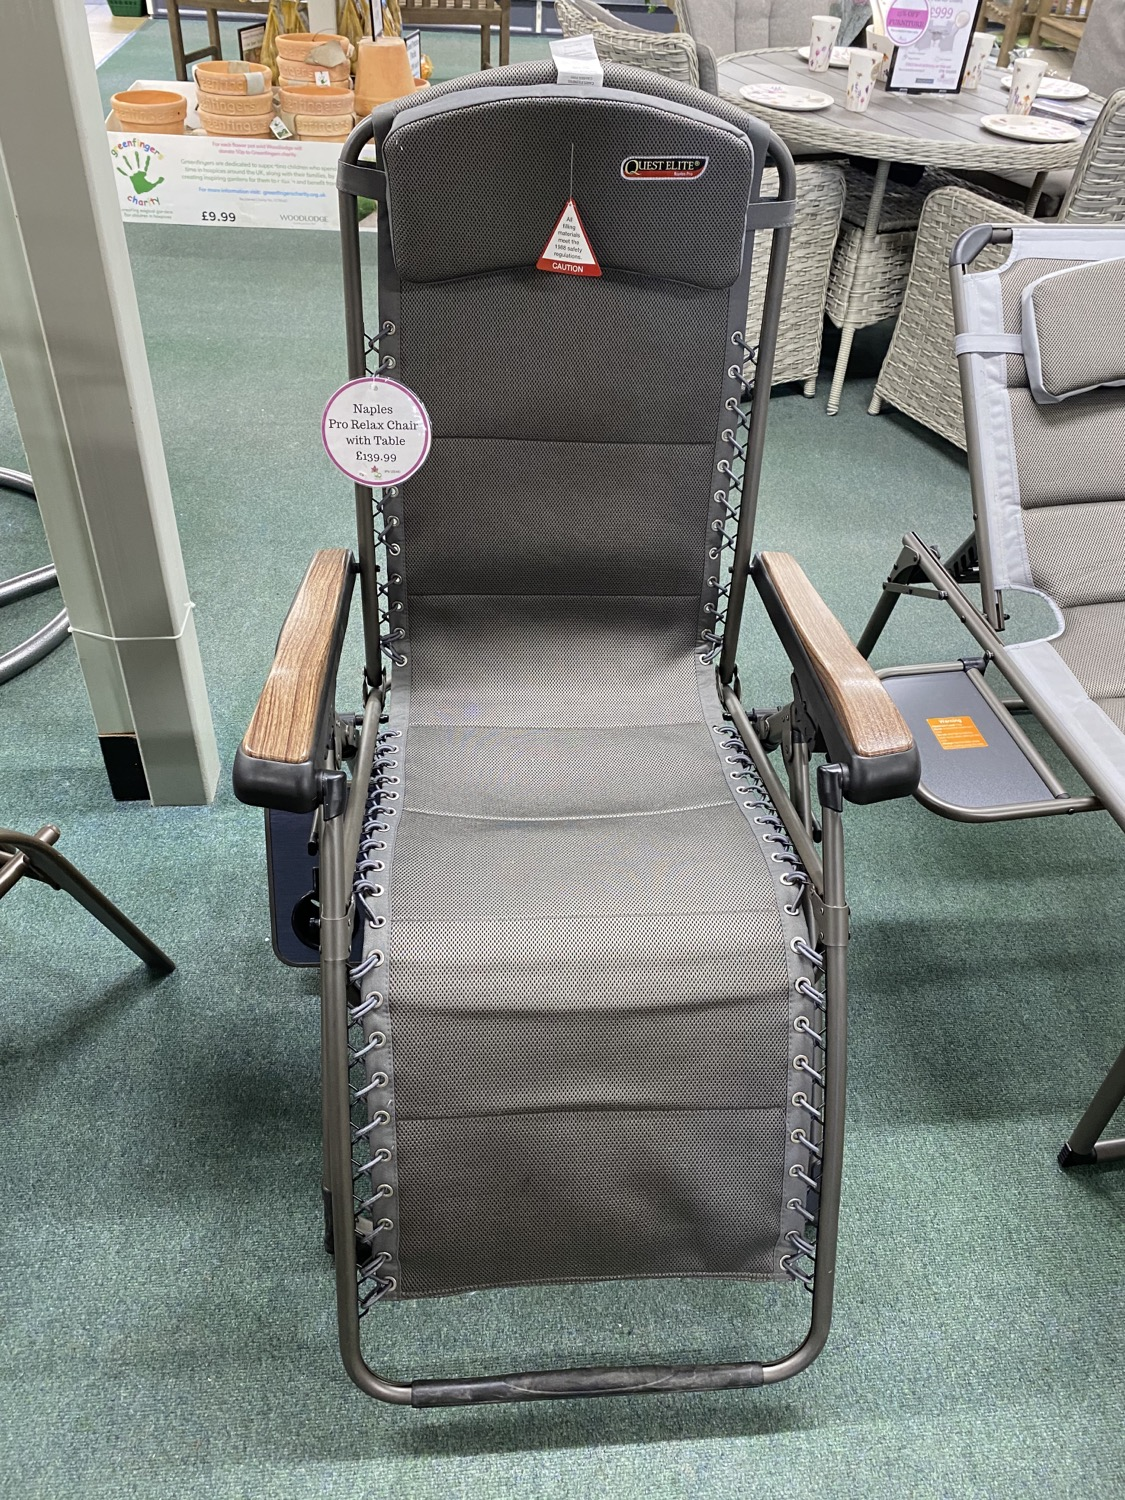 Naples Pro Relax Chair with table- £139.99